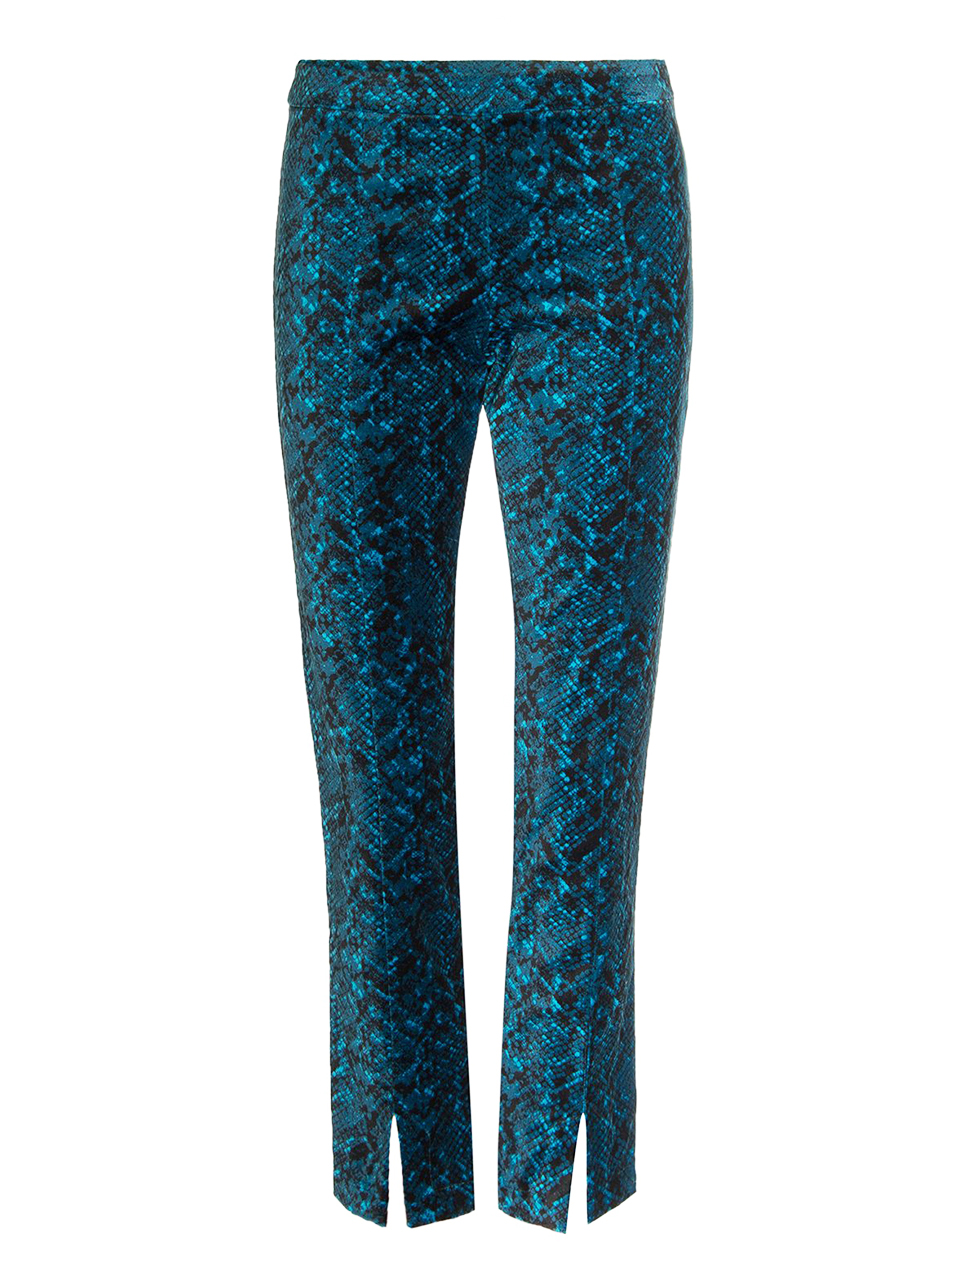 MISA Iris Pant in Teal Snake Product Shot